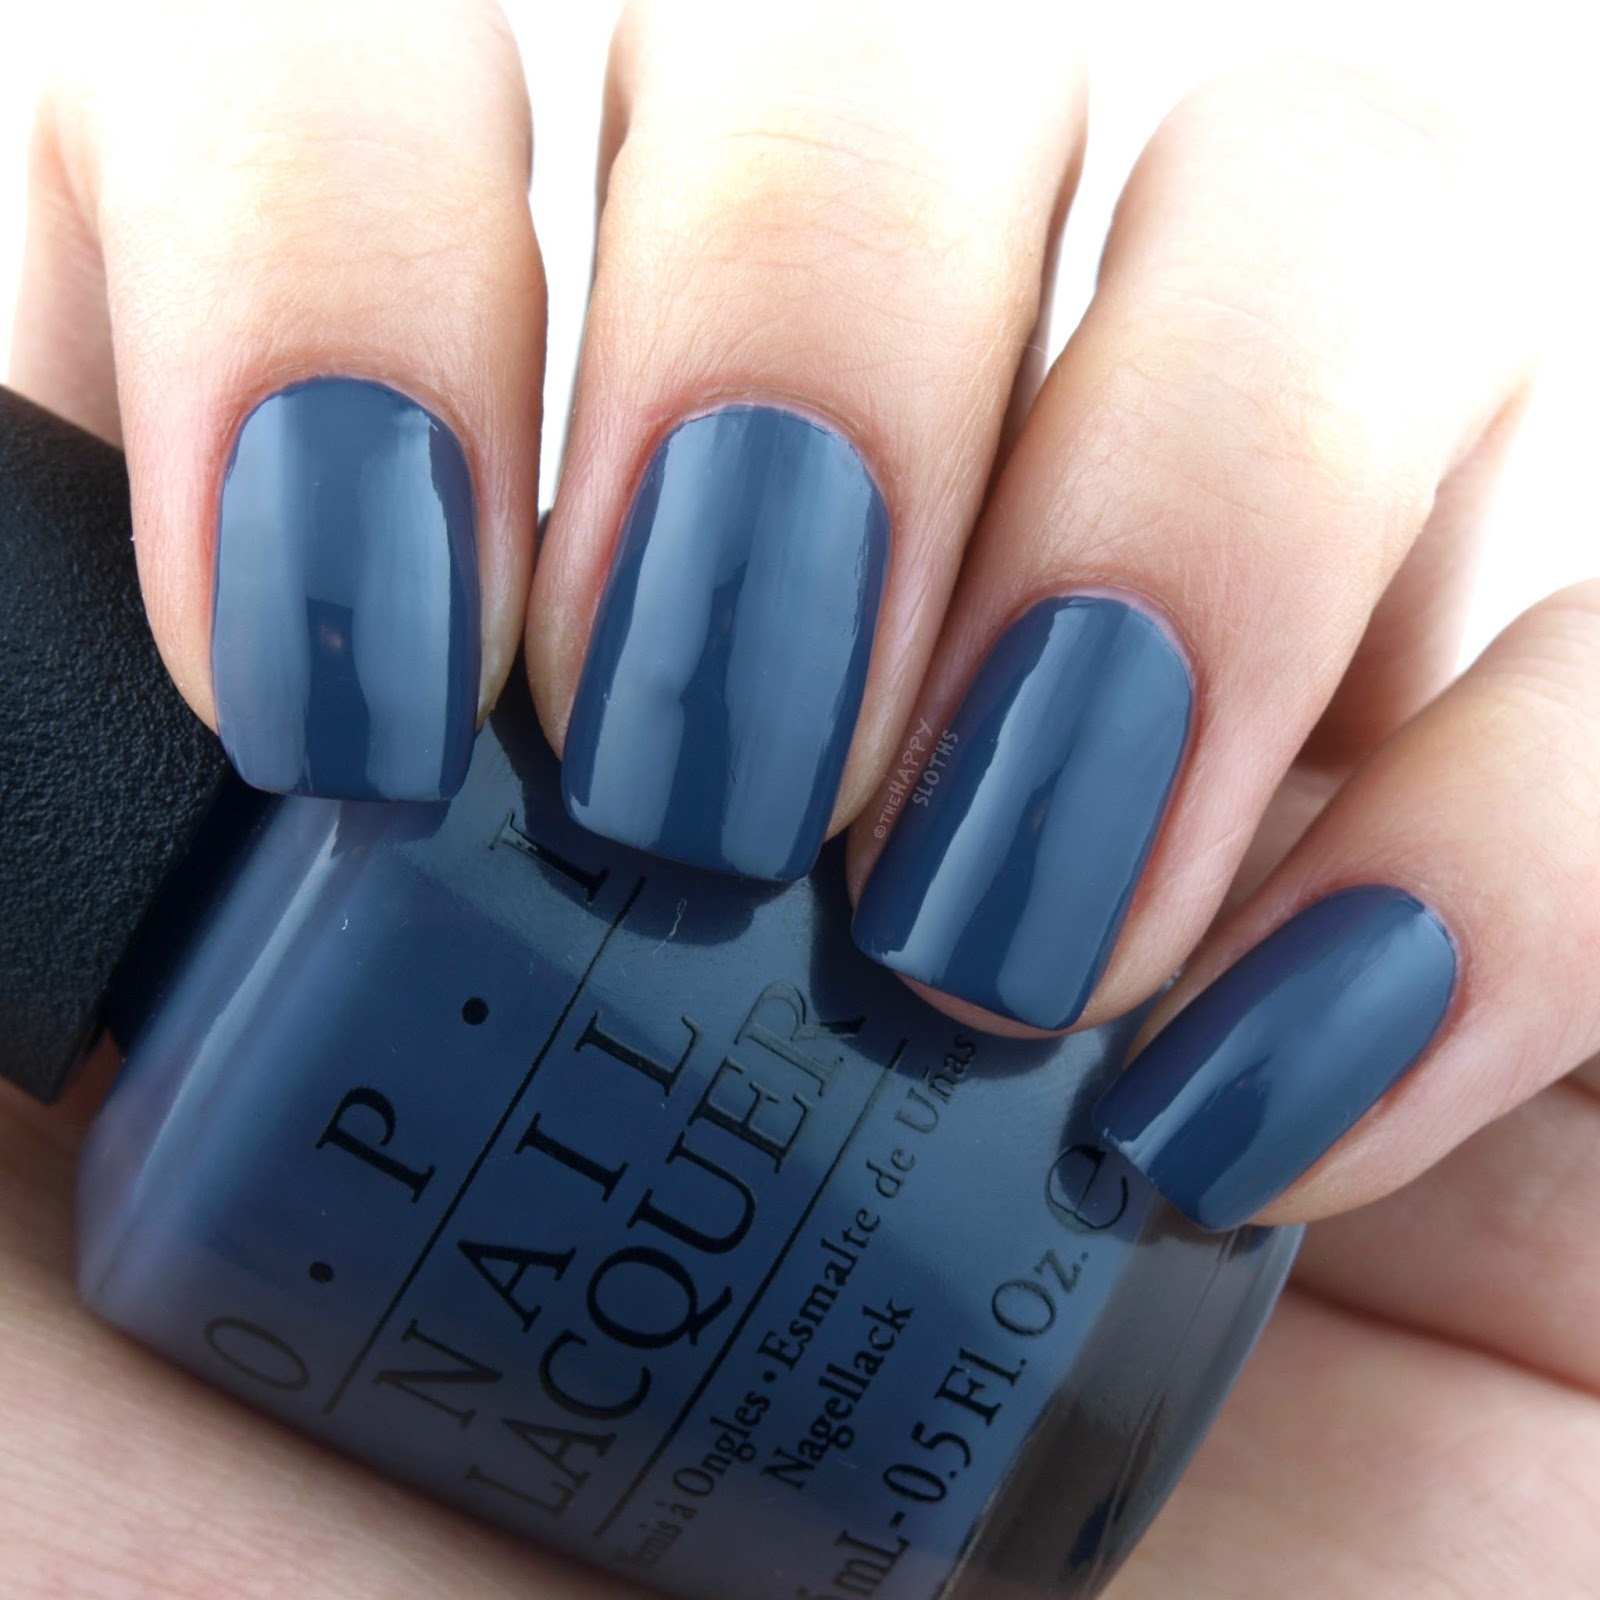 OPI Fall 2017 Iceland Collection | Less is Norse: Review and Swatches